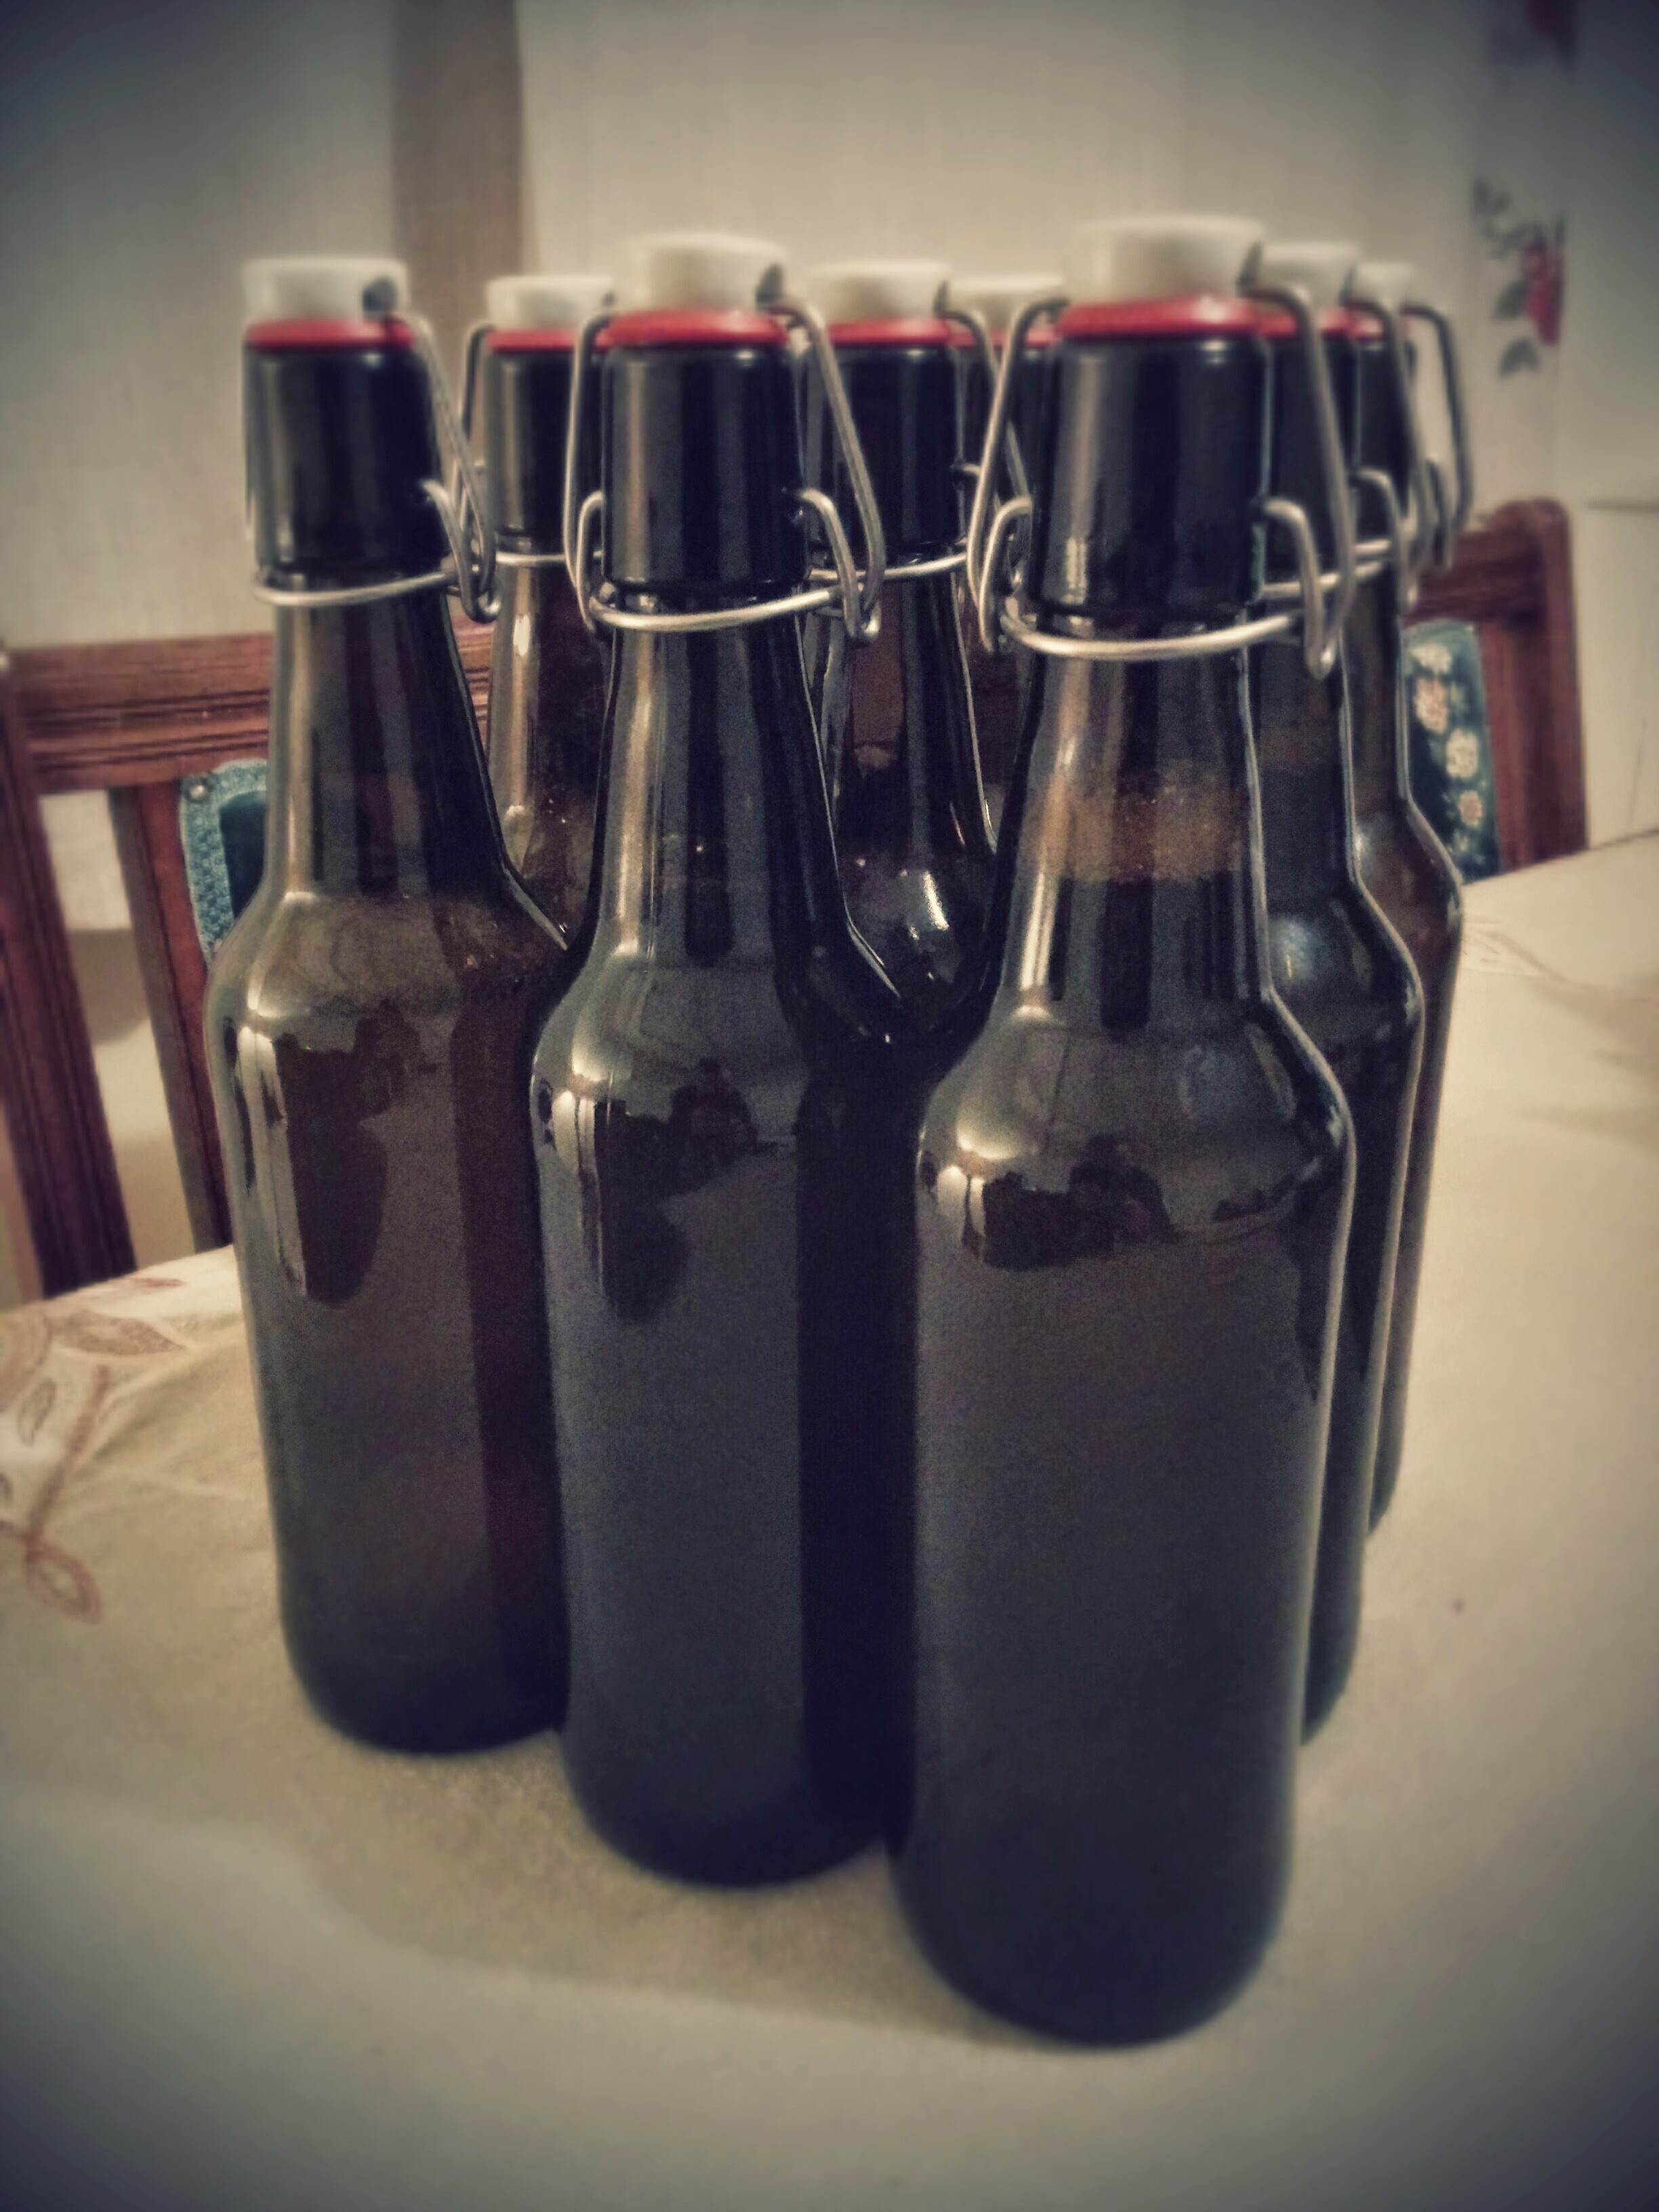 Our first batch of homemade cider